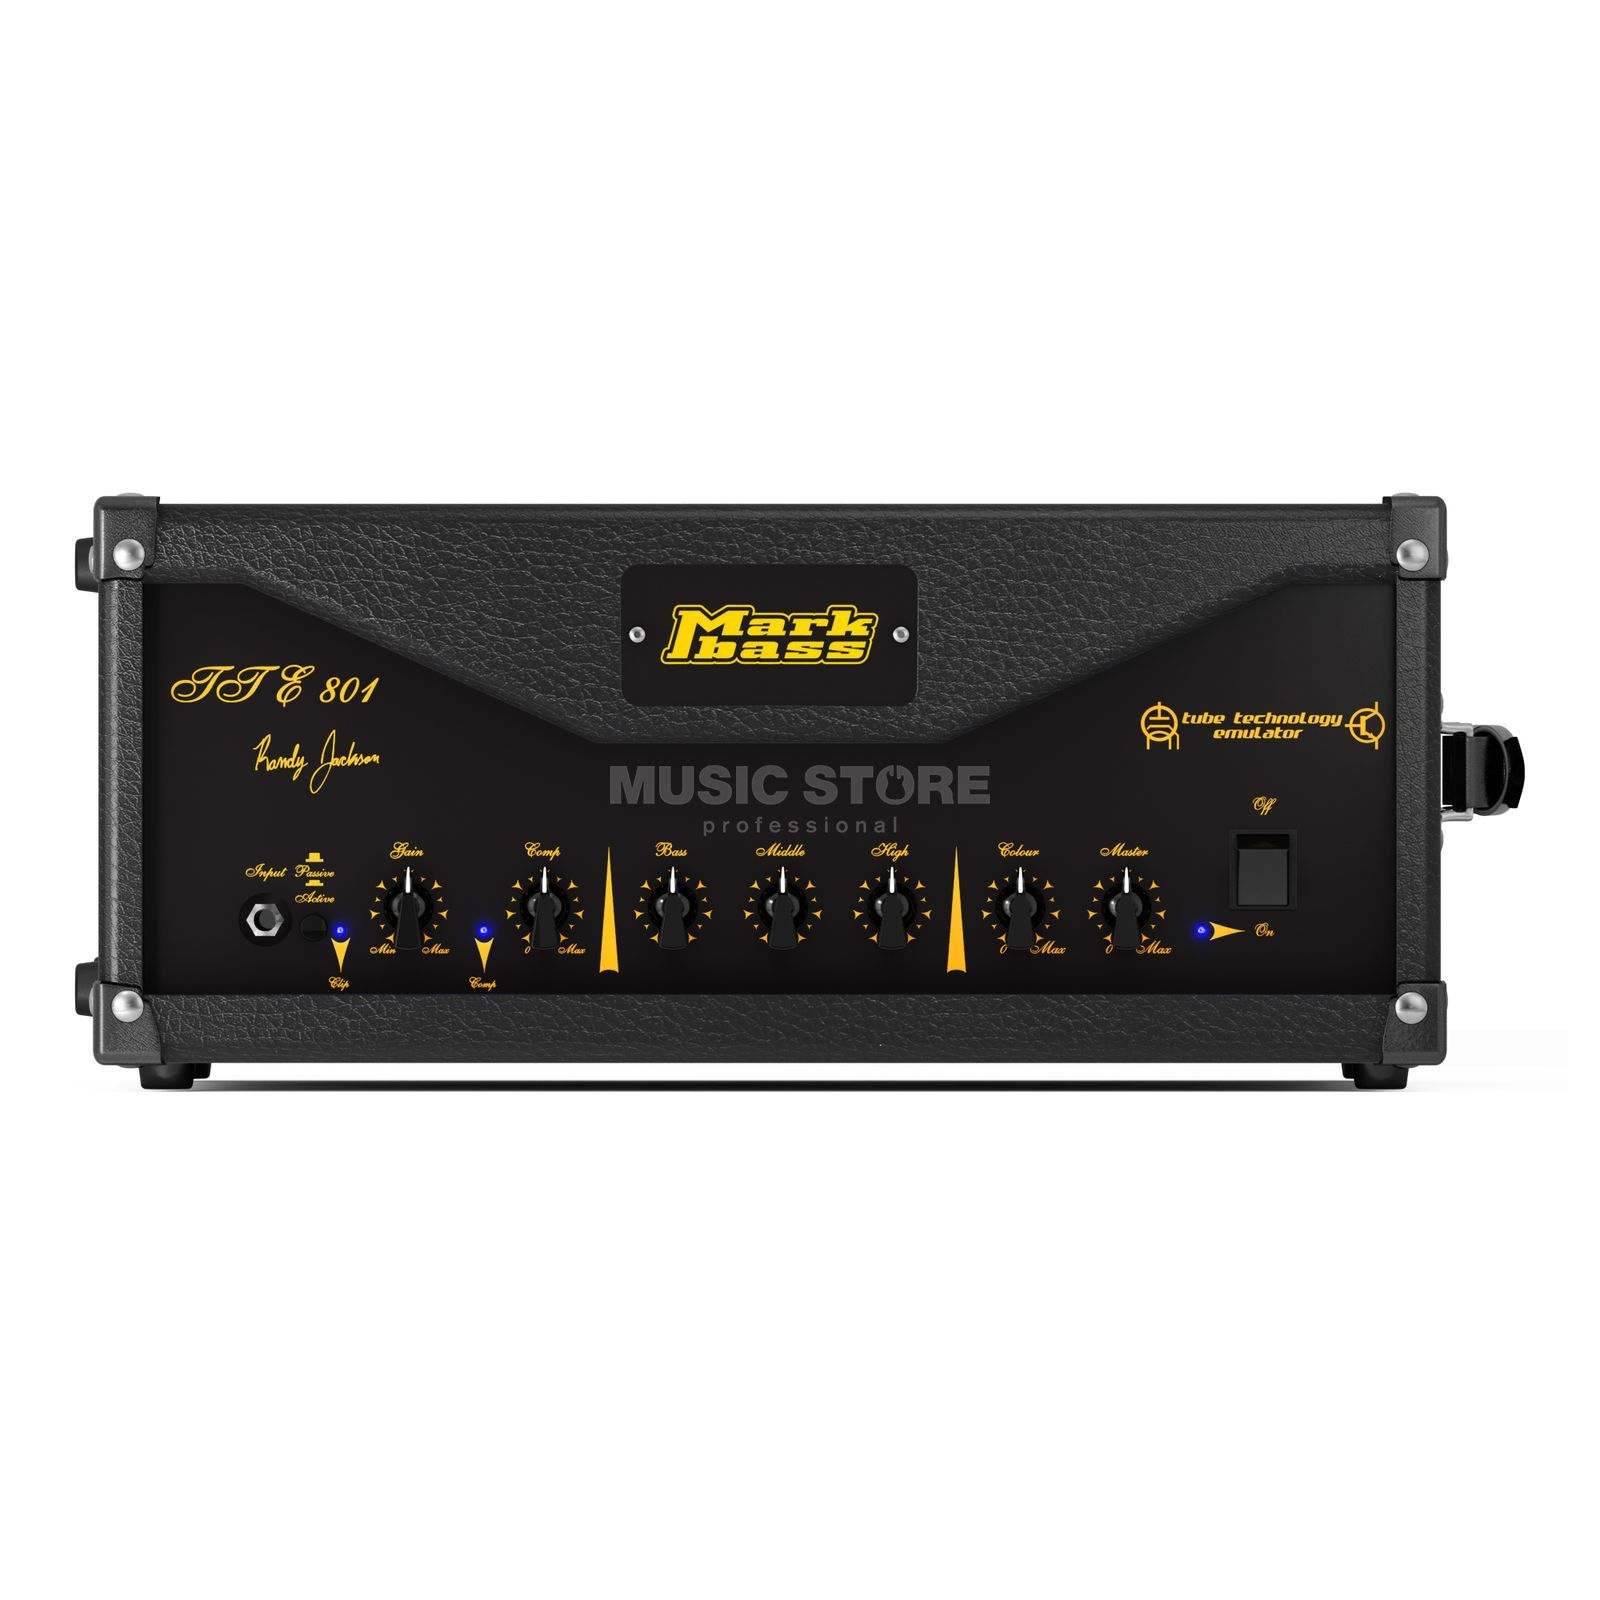 Markbass Head TTE 801 Product Image